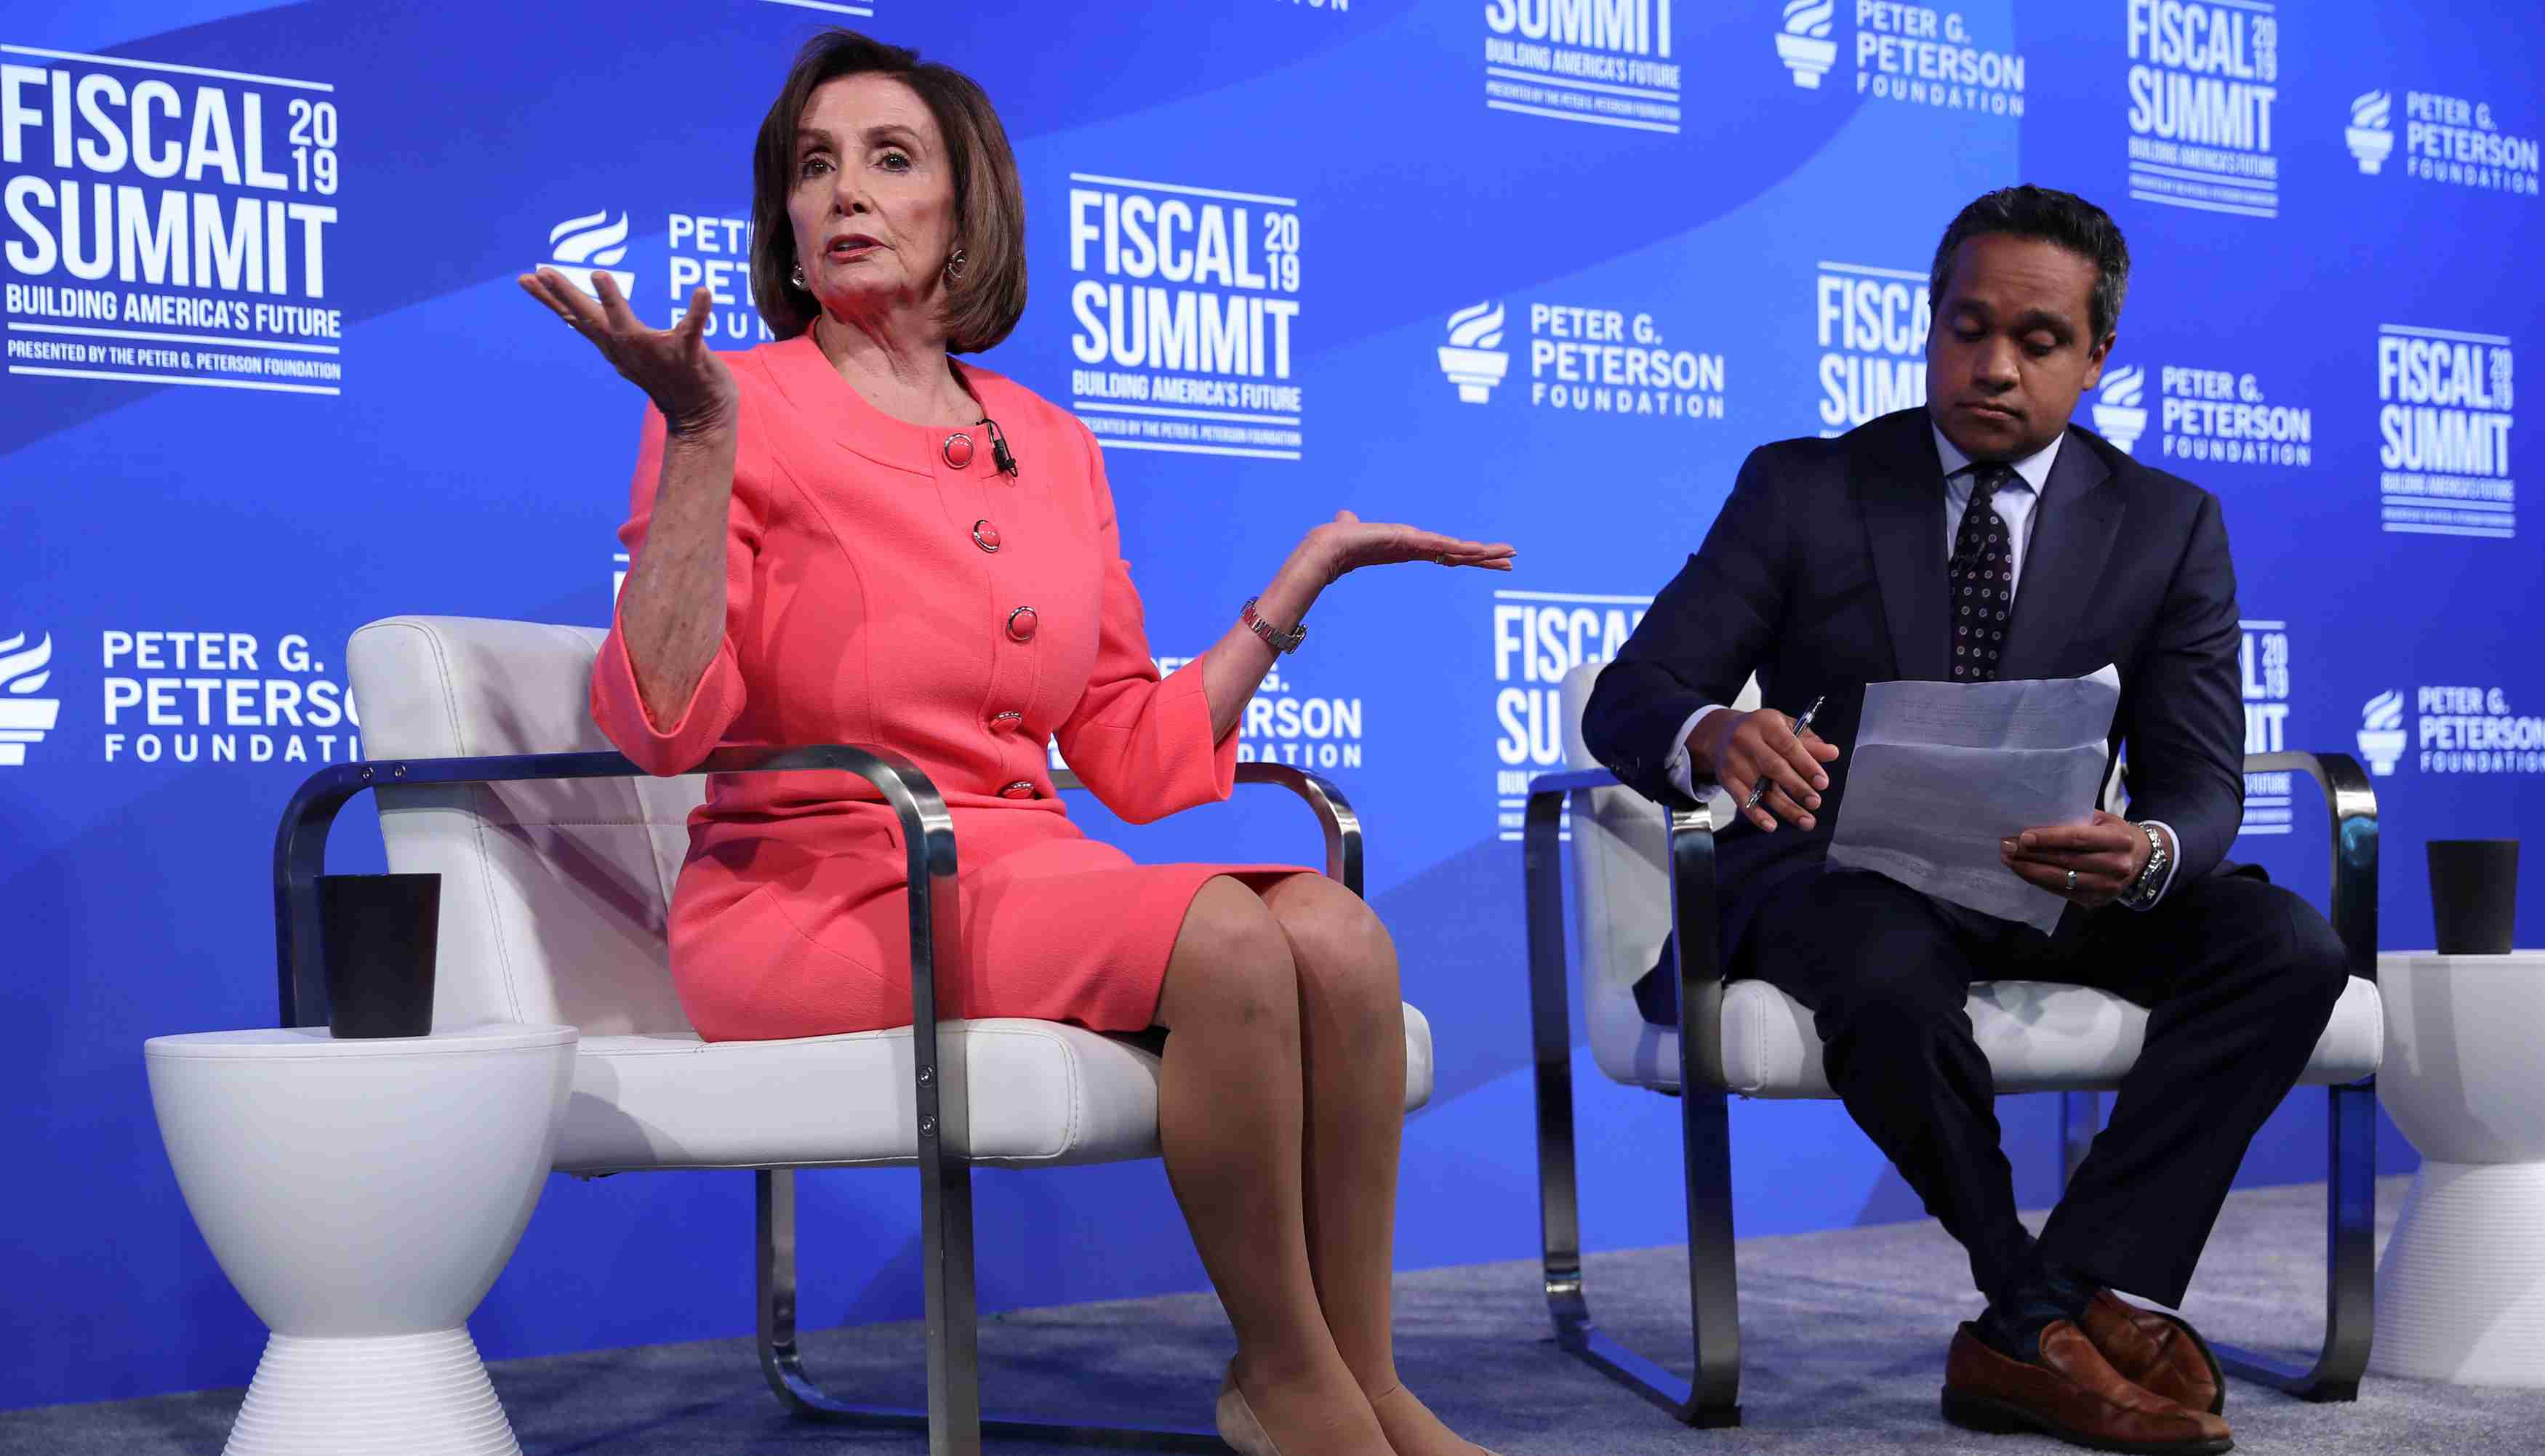 U.S. House Speaker Nancy Pelosi (D-CA) sits for an onstage interview about the U.S. budget with CNN reporter Manu Raju at the Peterson Foundation's annual Fiscal Summit in Washington, U.S. June 11, 2019.  REUTERS/Jonathan Ernst - RC19F3443080